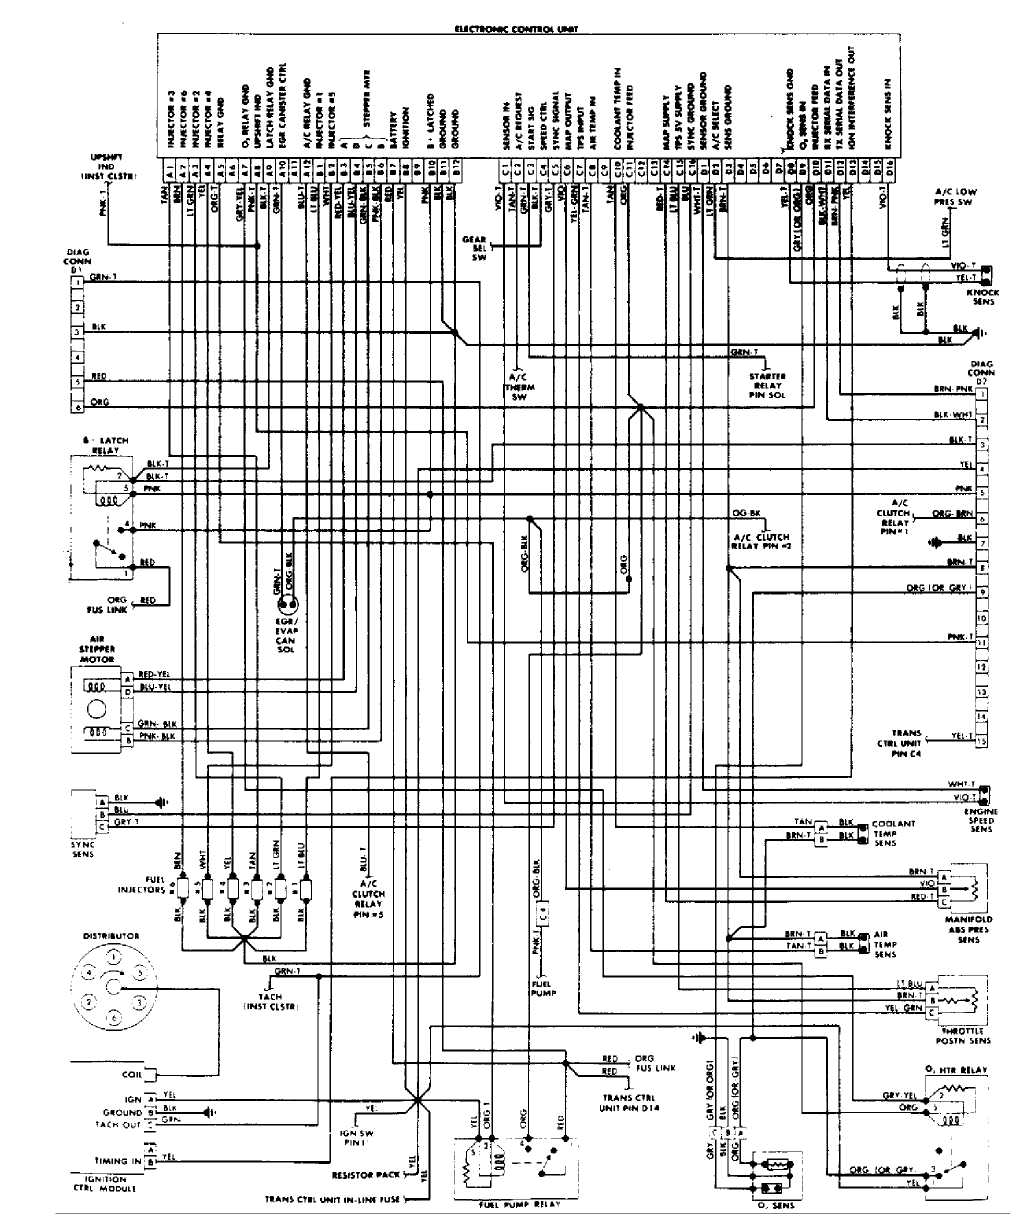 hight resolution of cat c13 wiring schematics wiring diagram cat c15 wiring diagram cat c13 wiring diagram